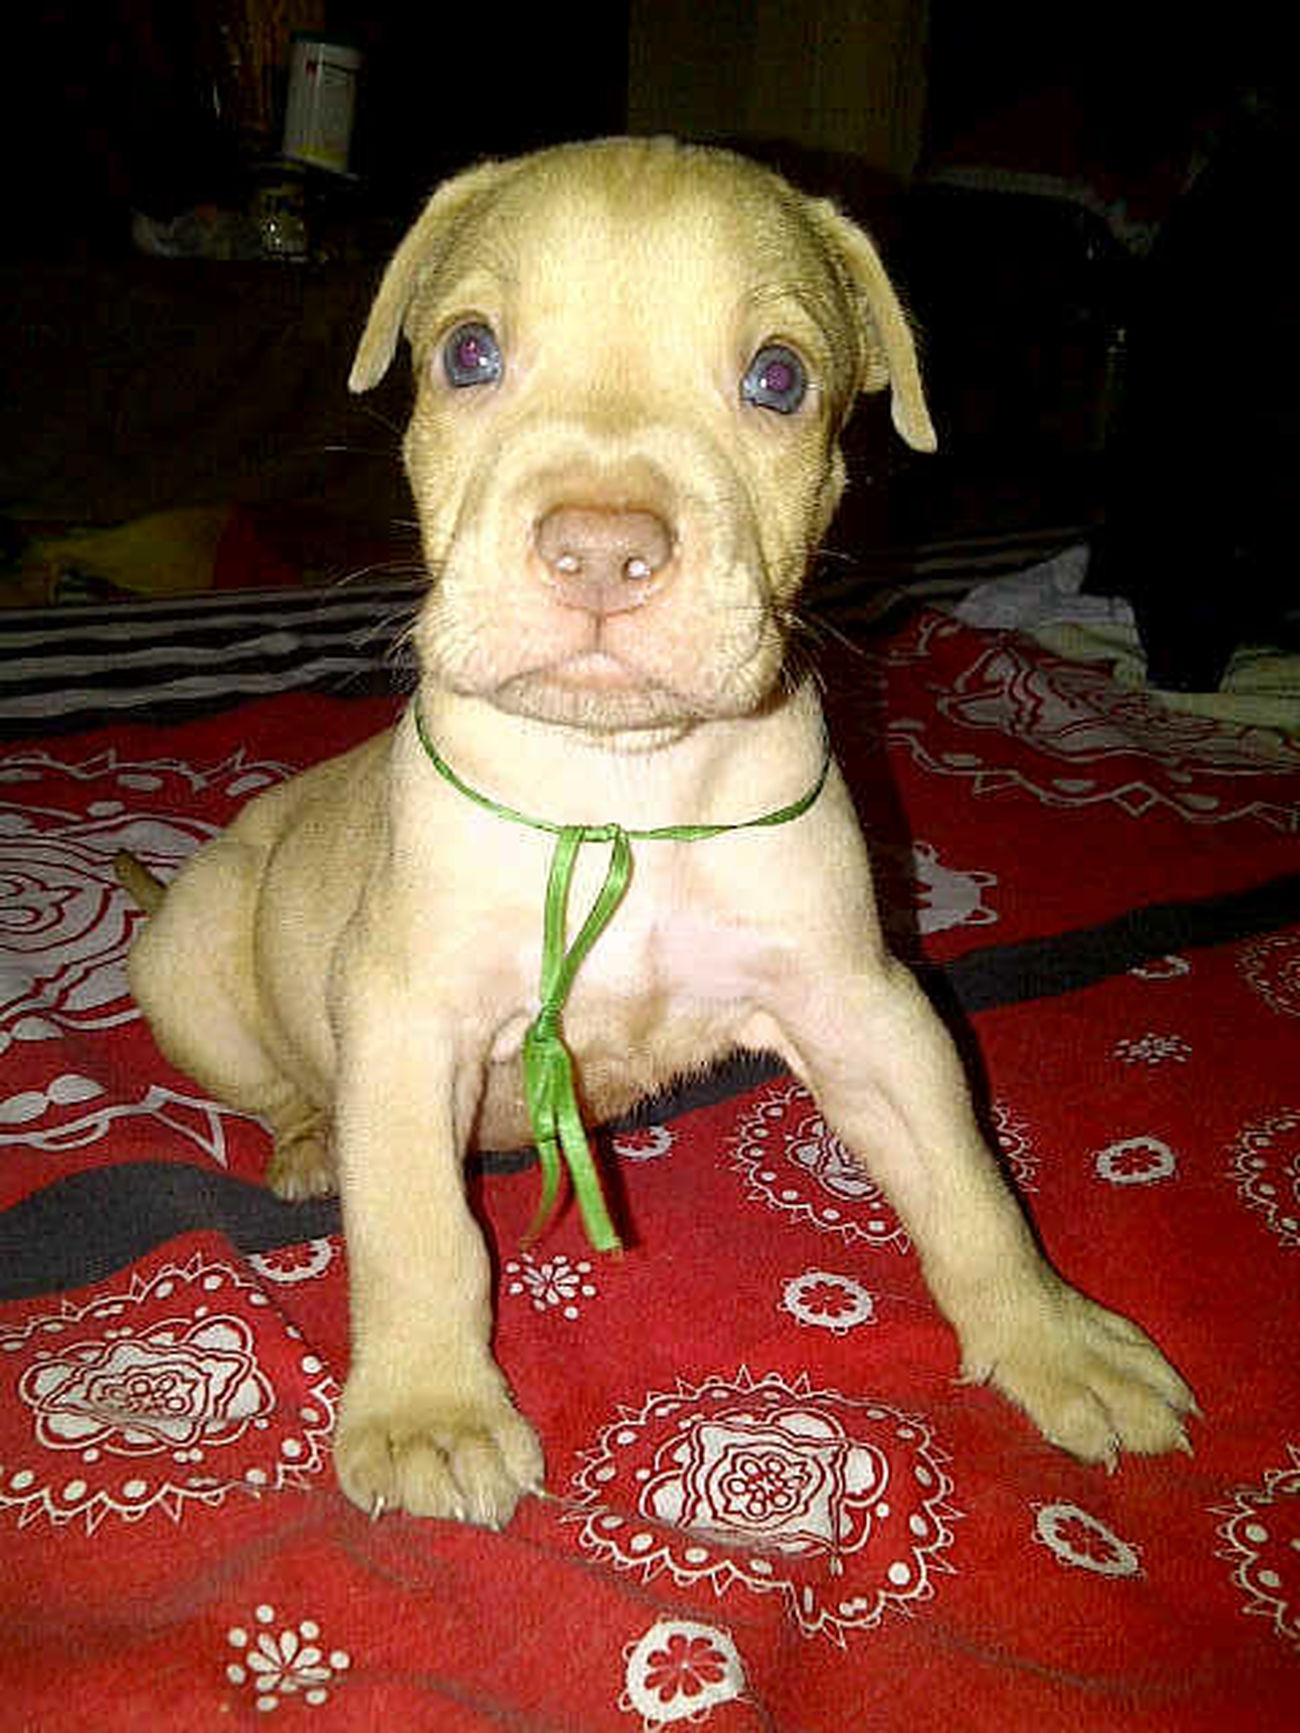 Ready for booked, pitbull puppies 7 week. Hub 021-44414141 atau pin 234148a0. Dog Lover's In Jakarta, Indonesia